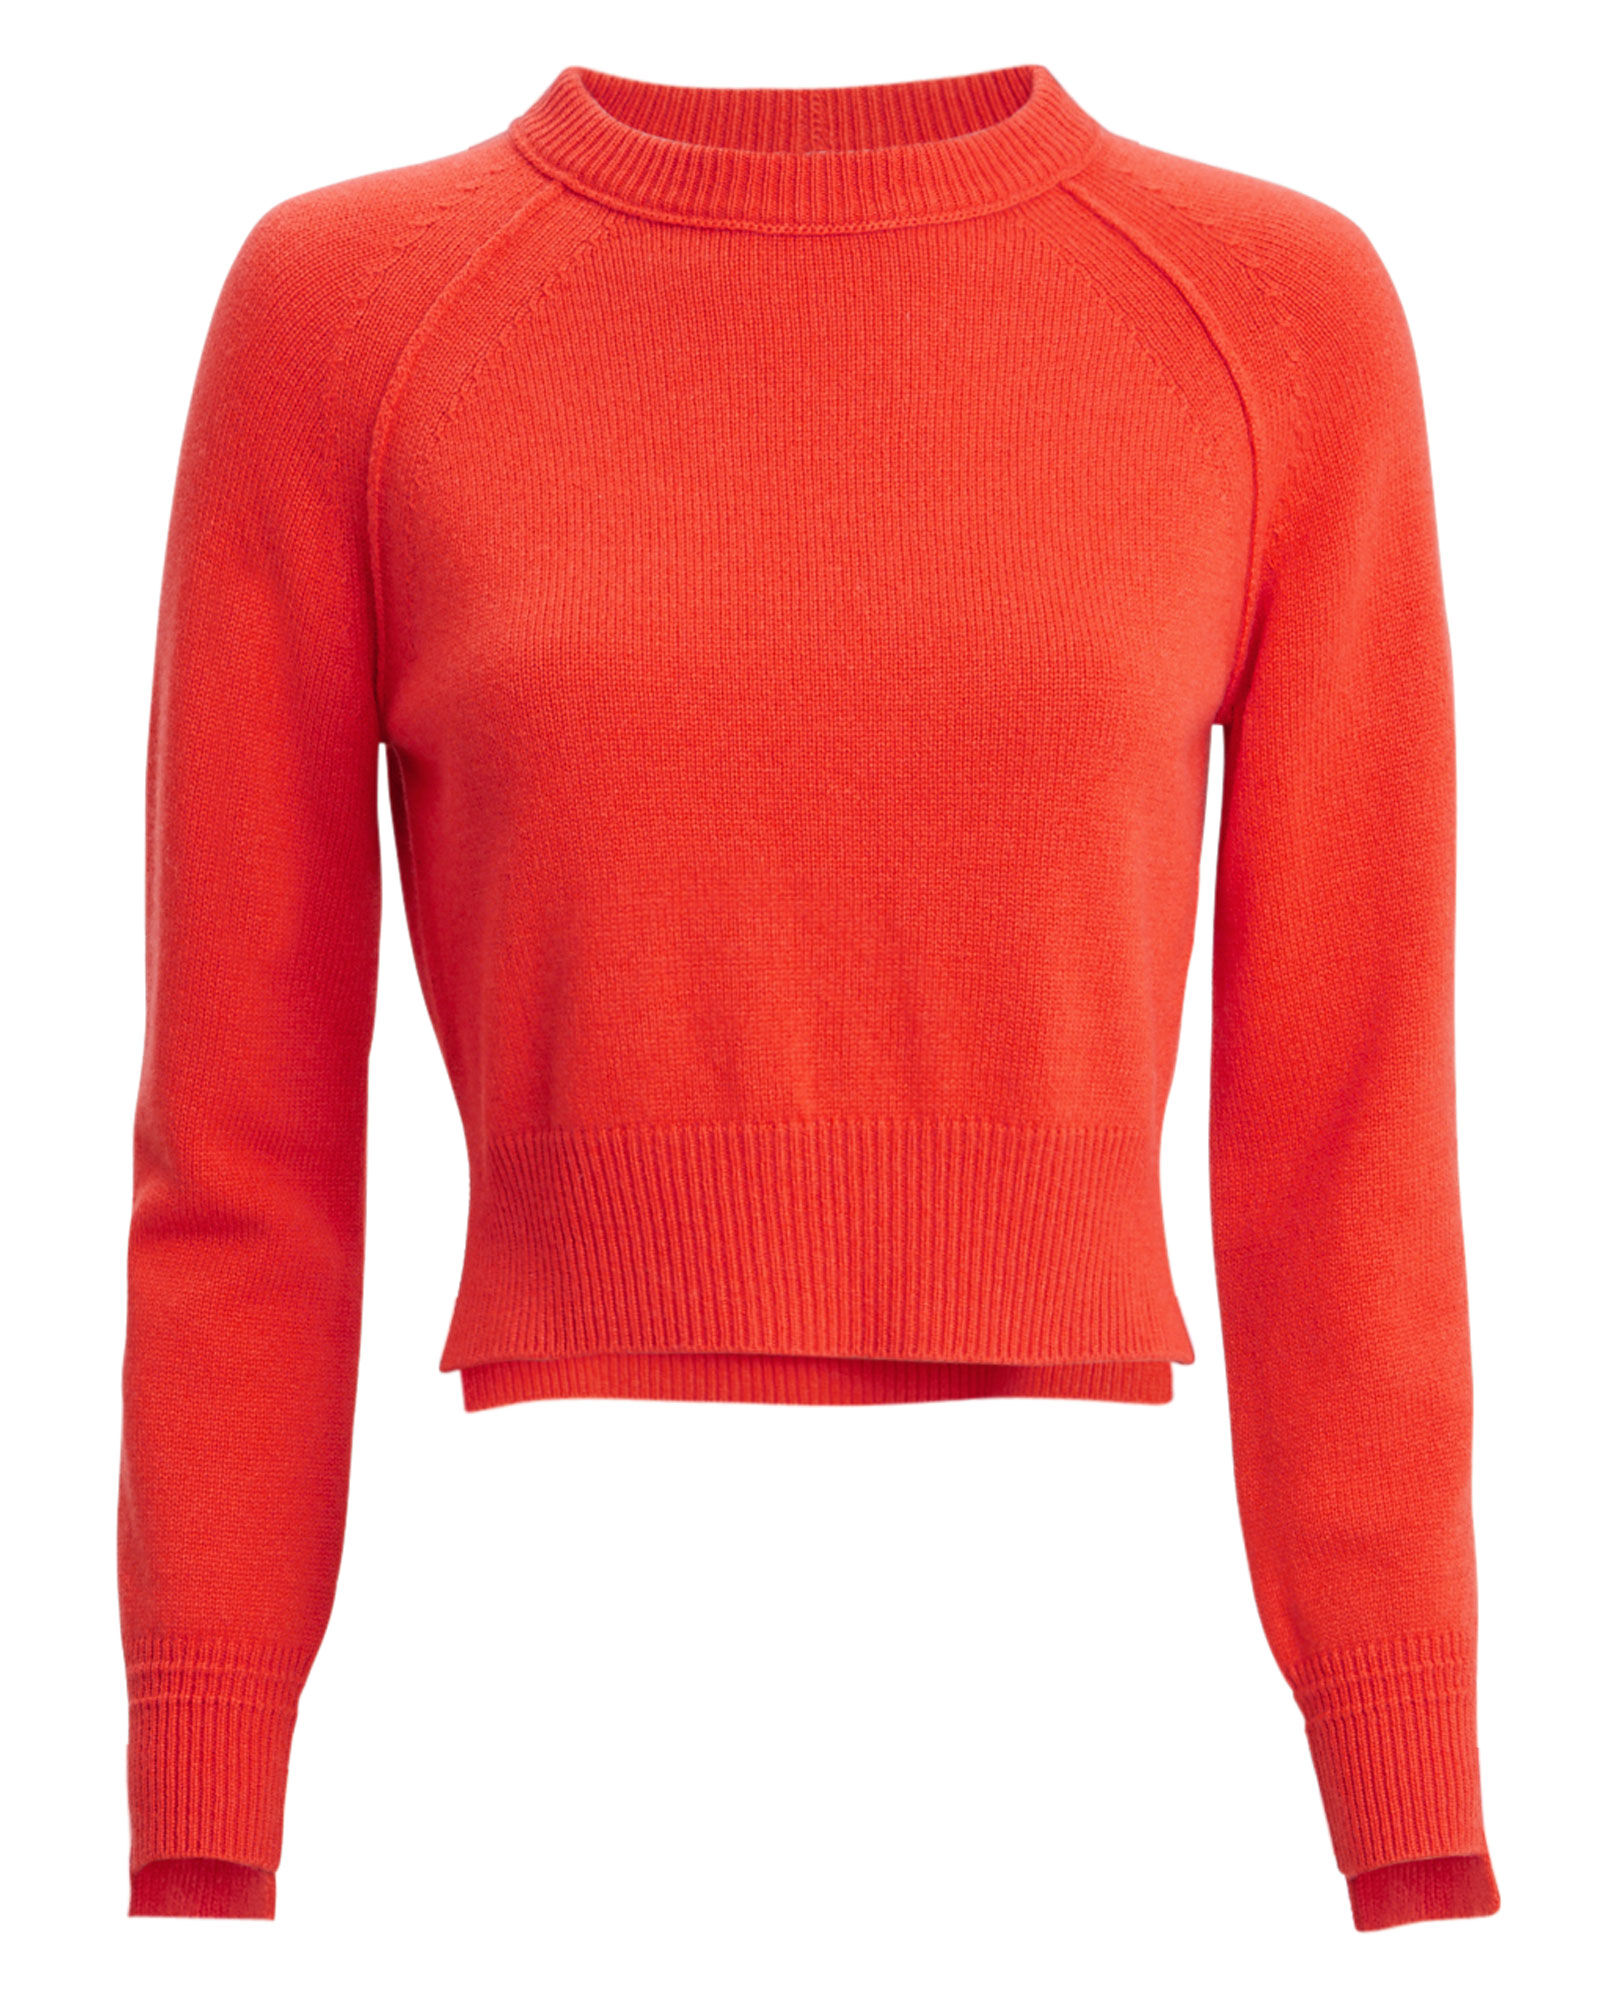 Cropped Cashmere Sweater, RED, hi-res